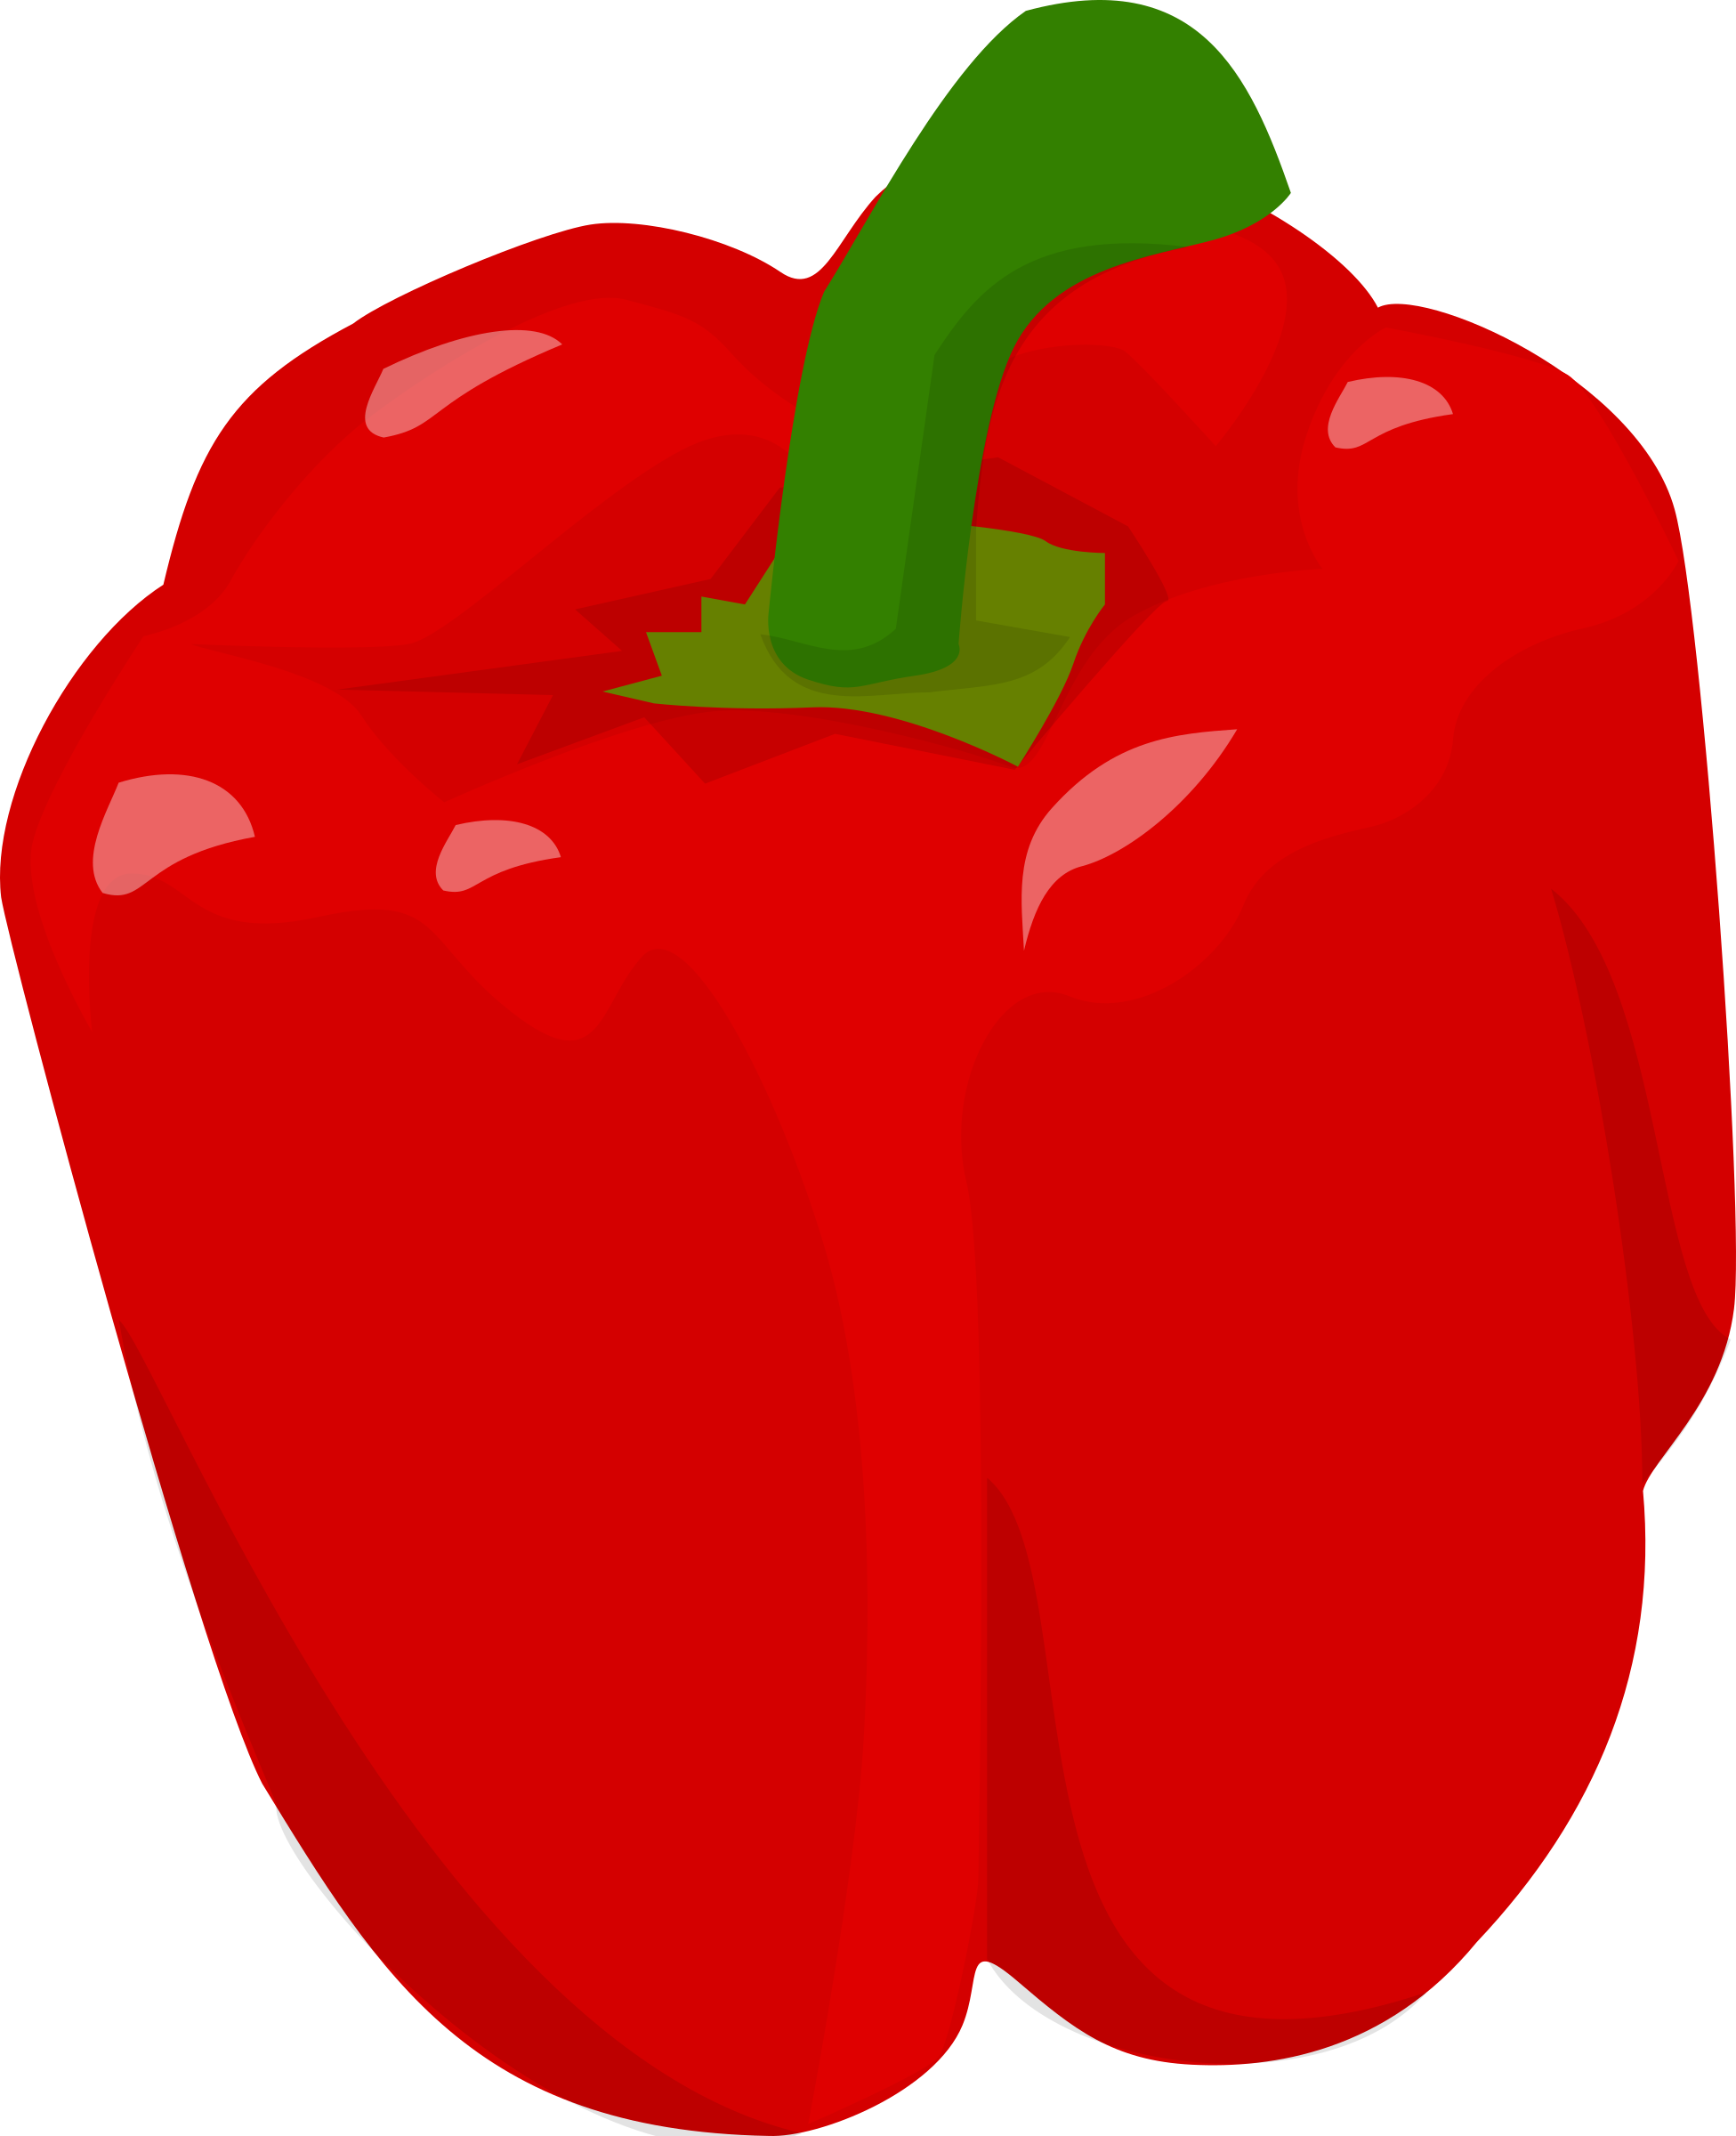 Stuffed pepper clipart vector royalty free download Peppers Clipart | Free download best Peppers Clipart on ... vector royalty free download